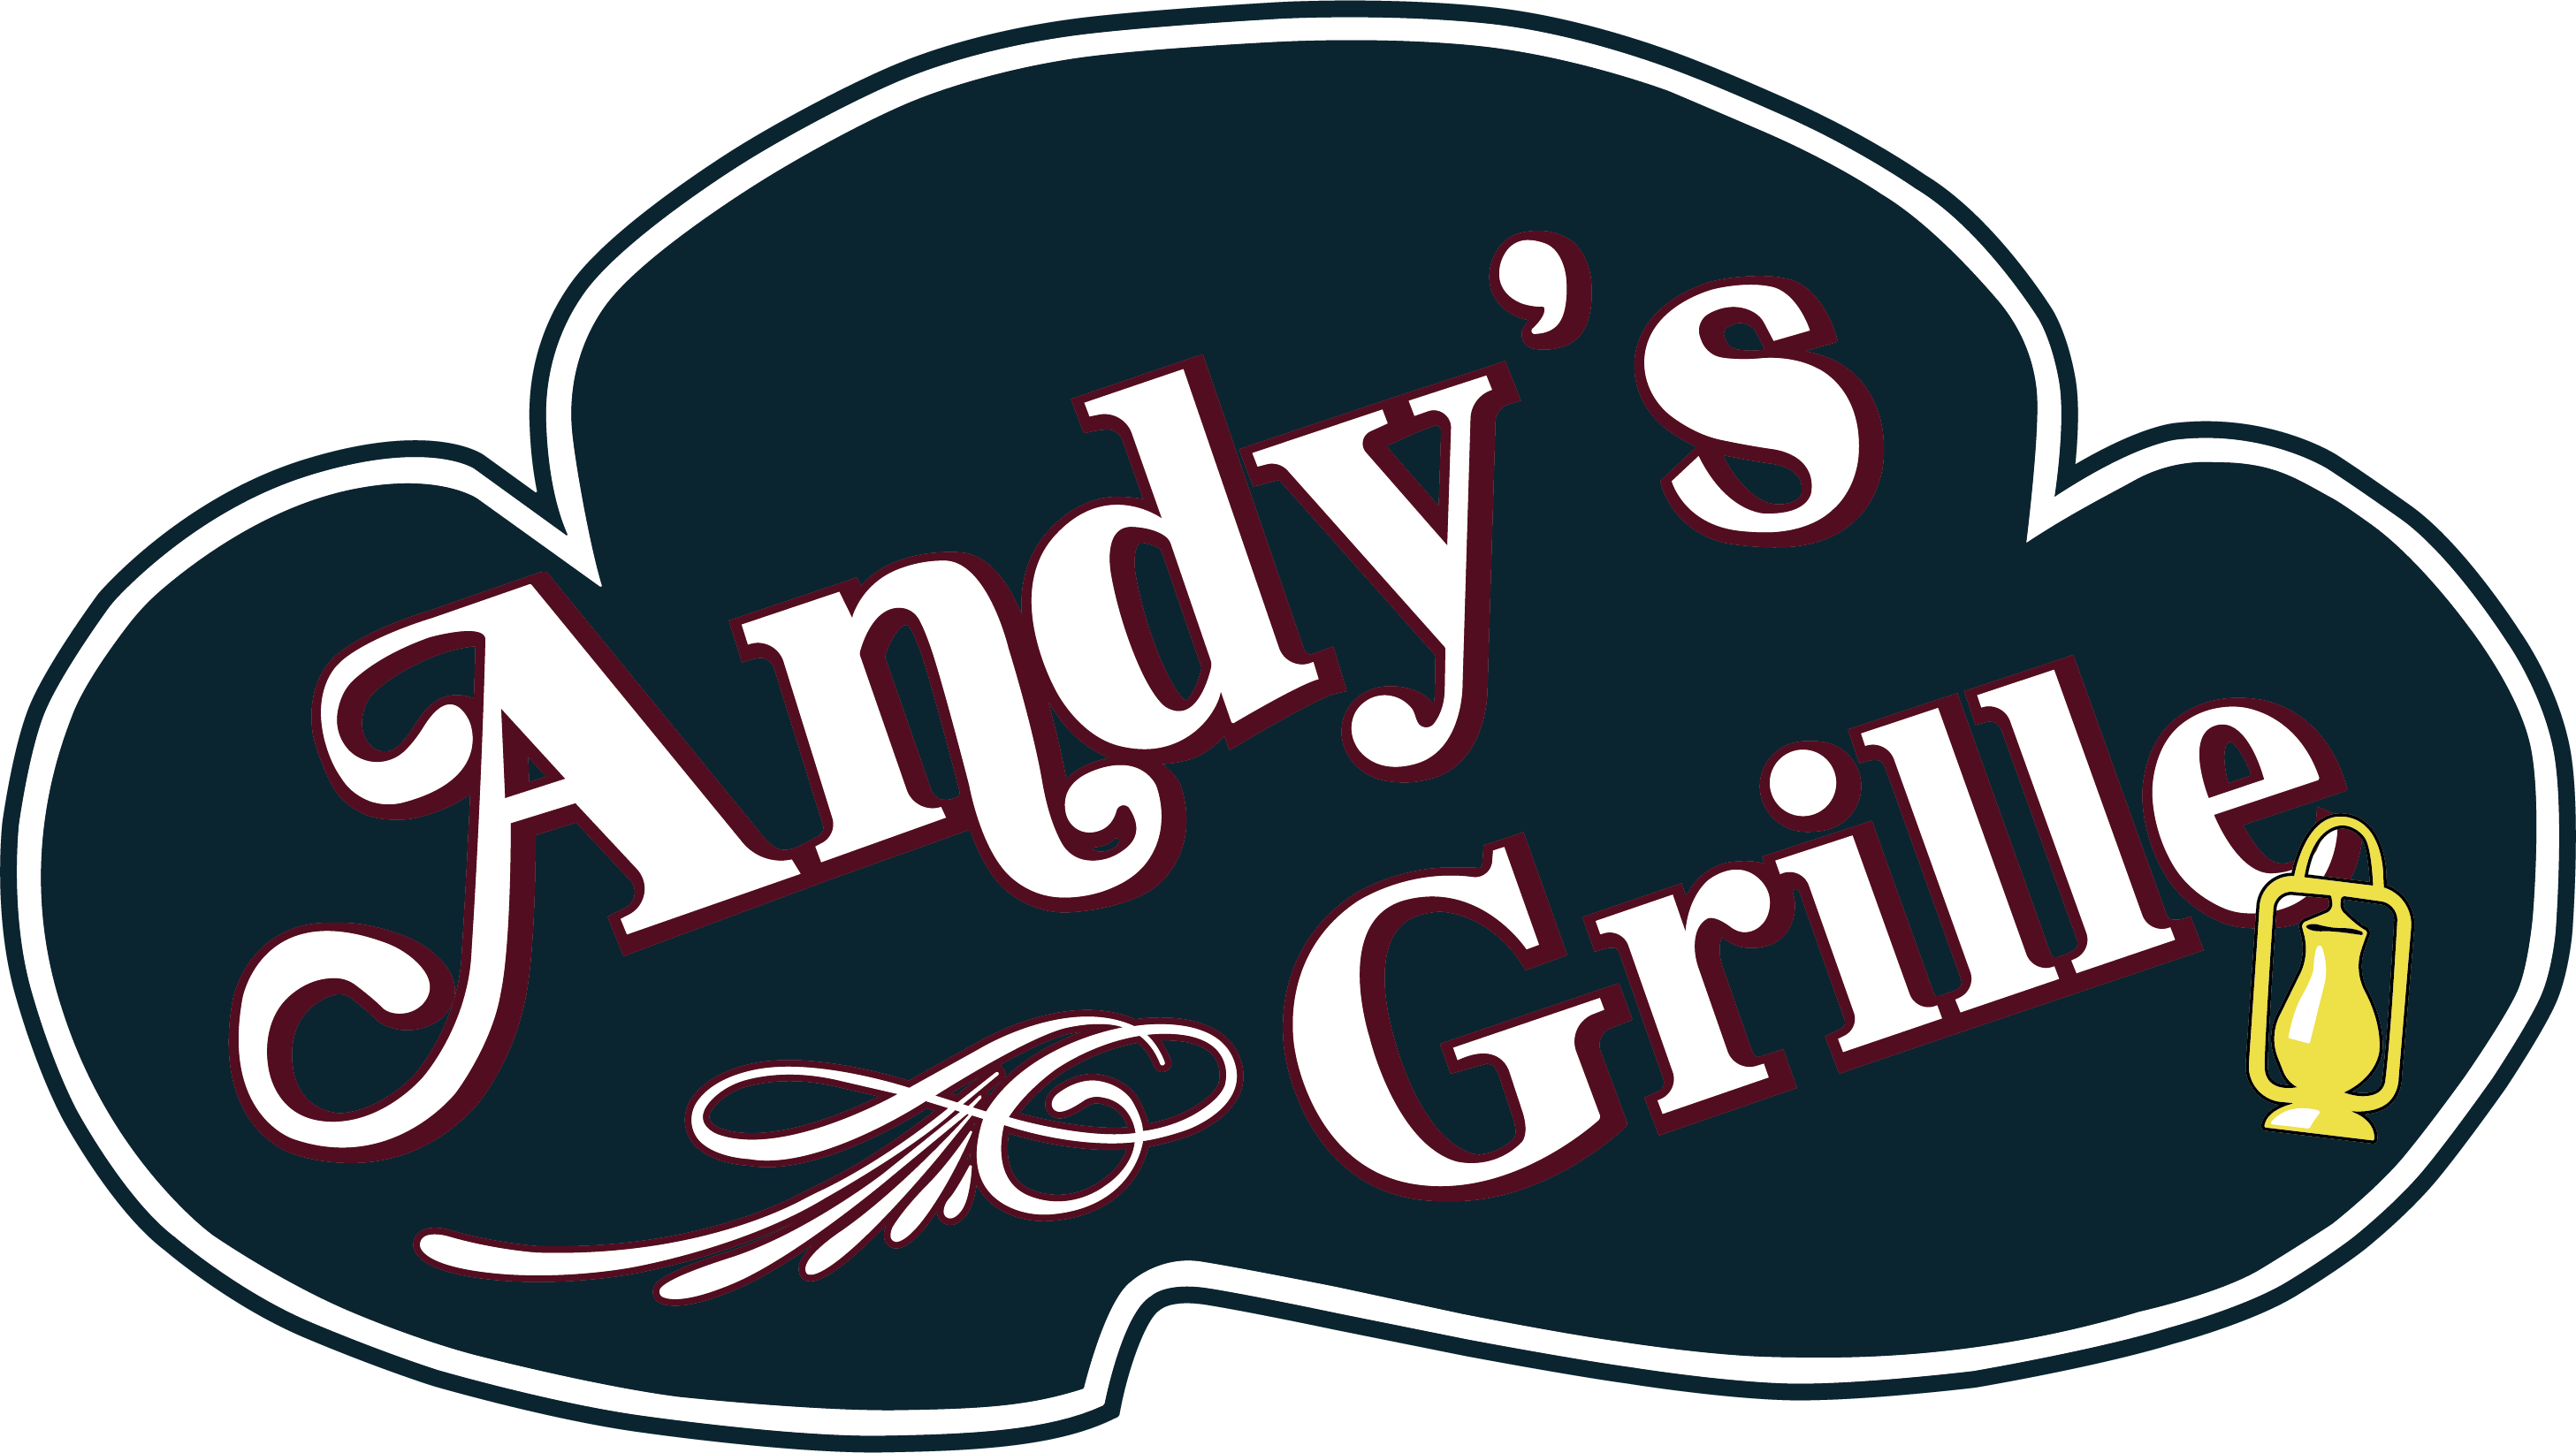 Andy's Grille logo